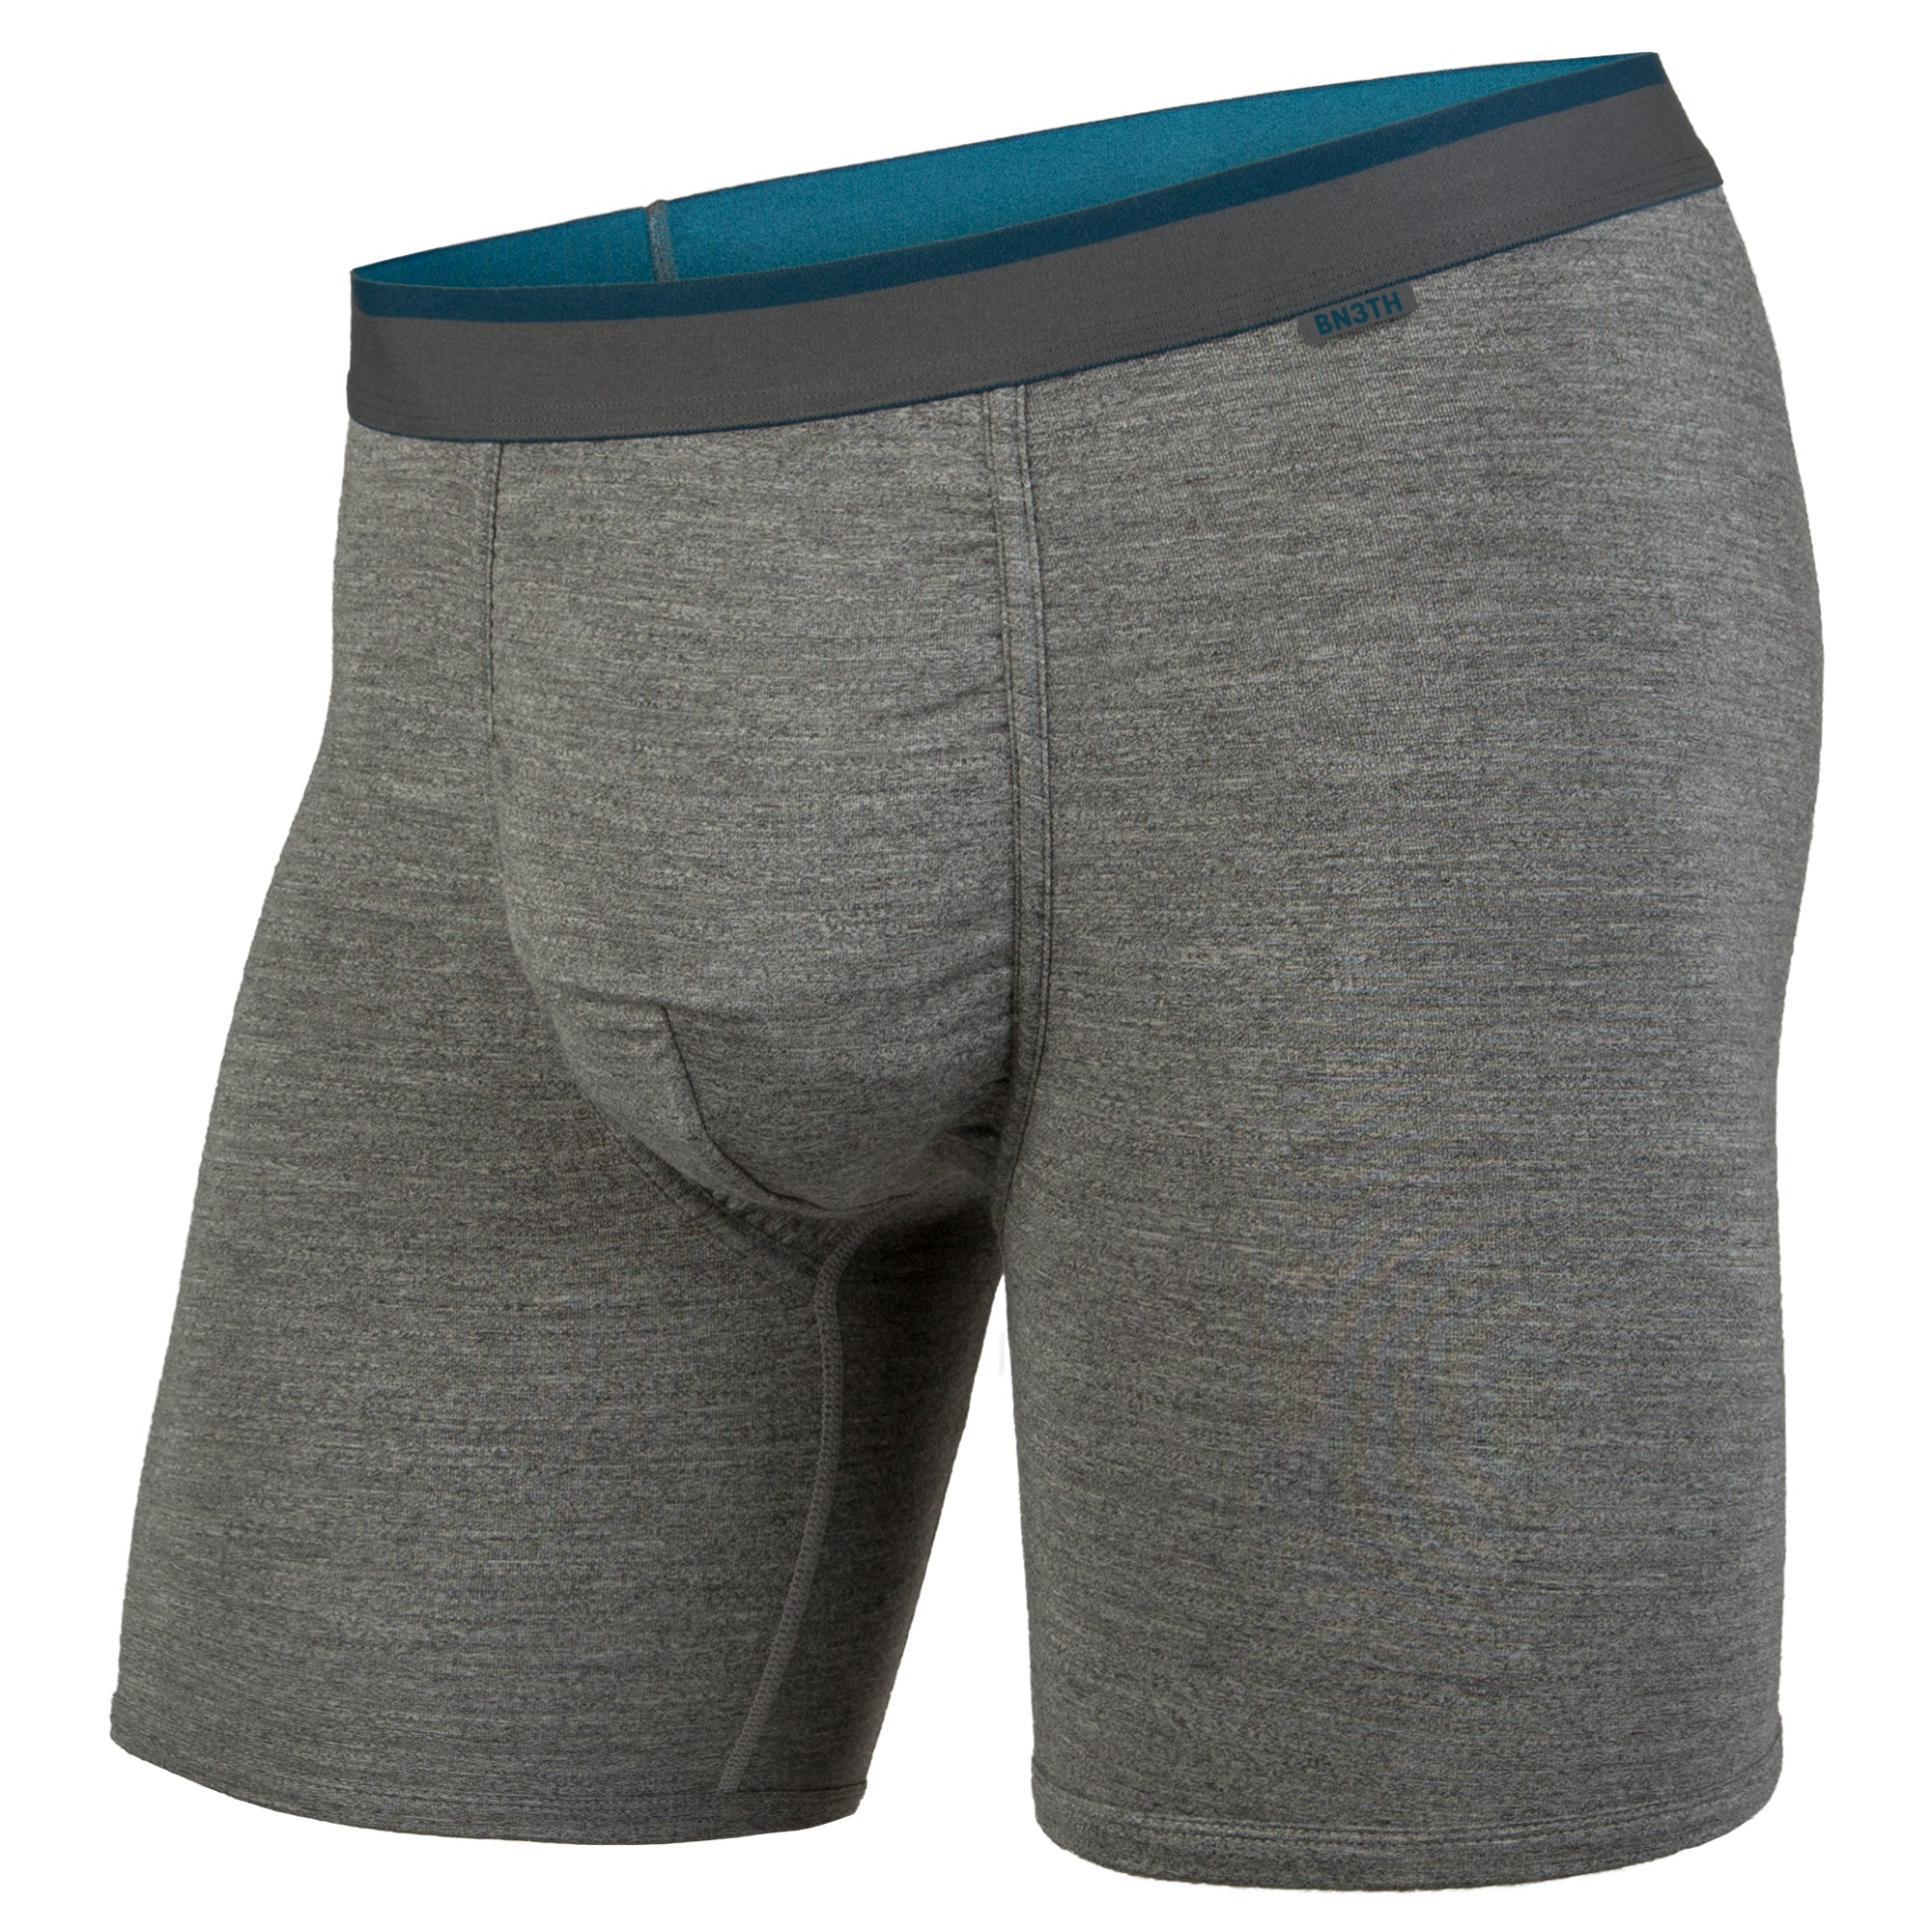 Boxer classic charcoal heather ink